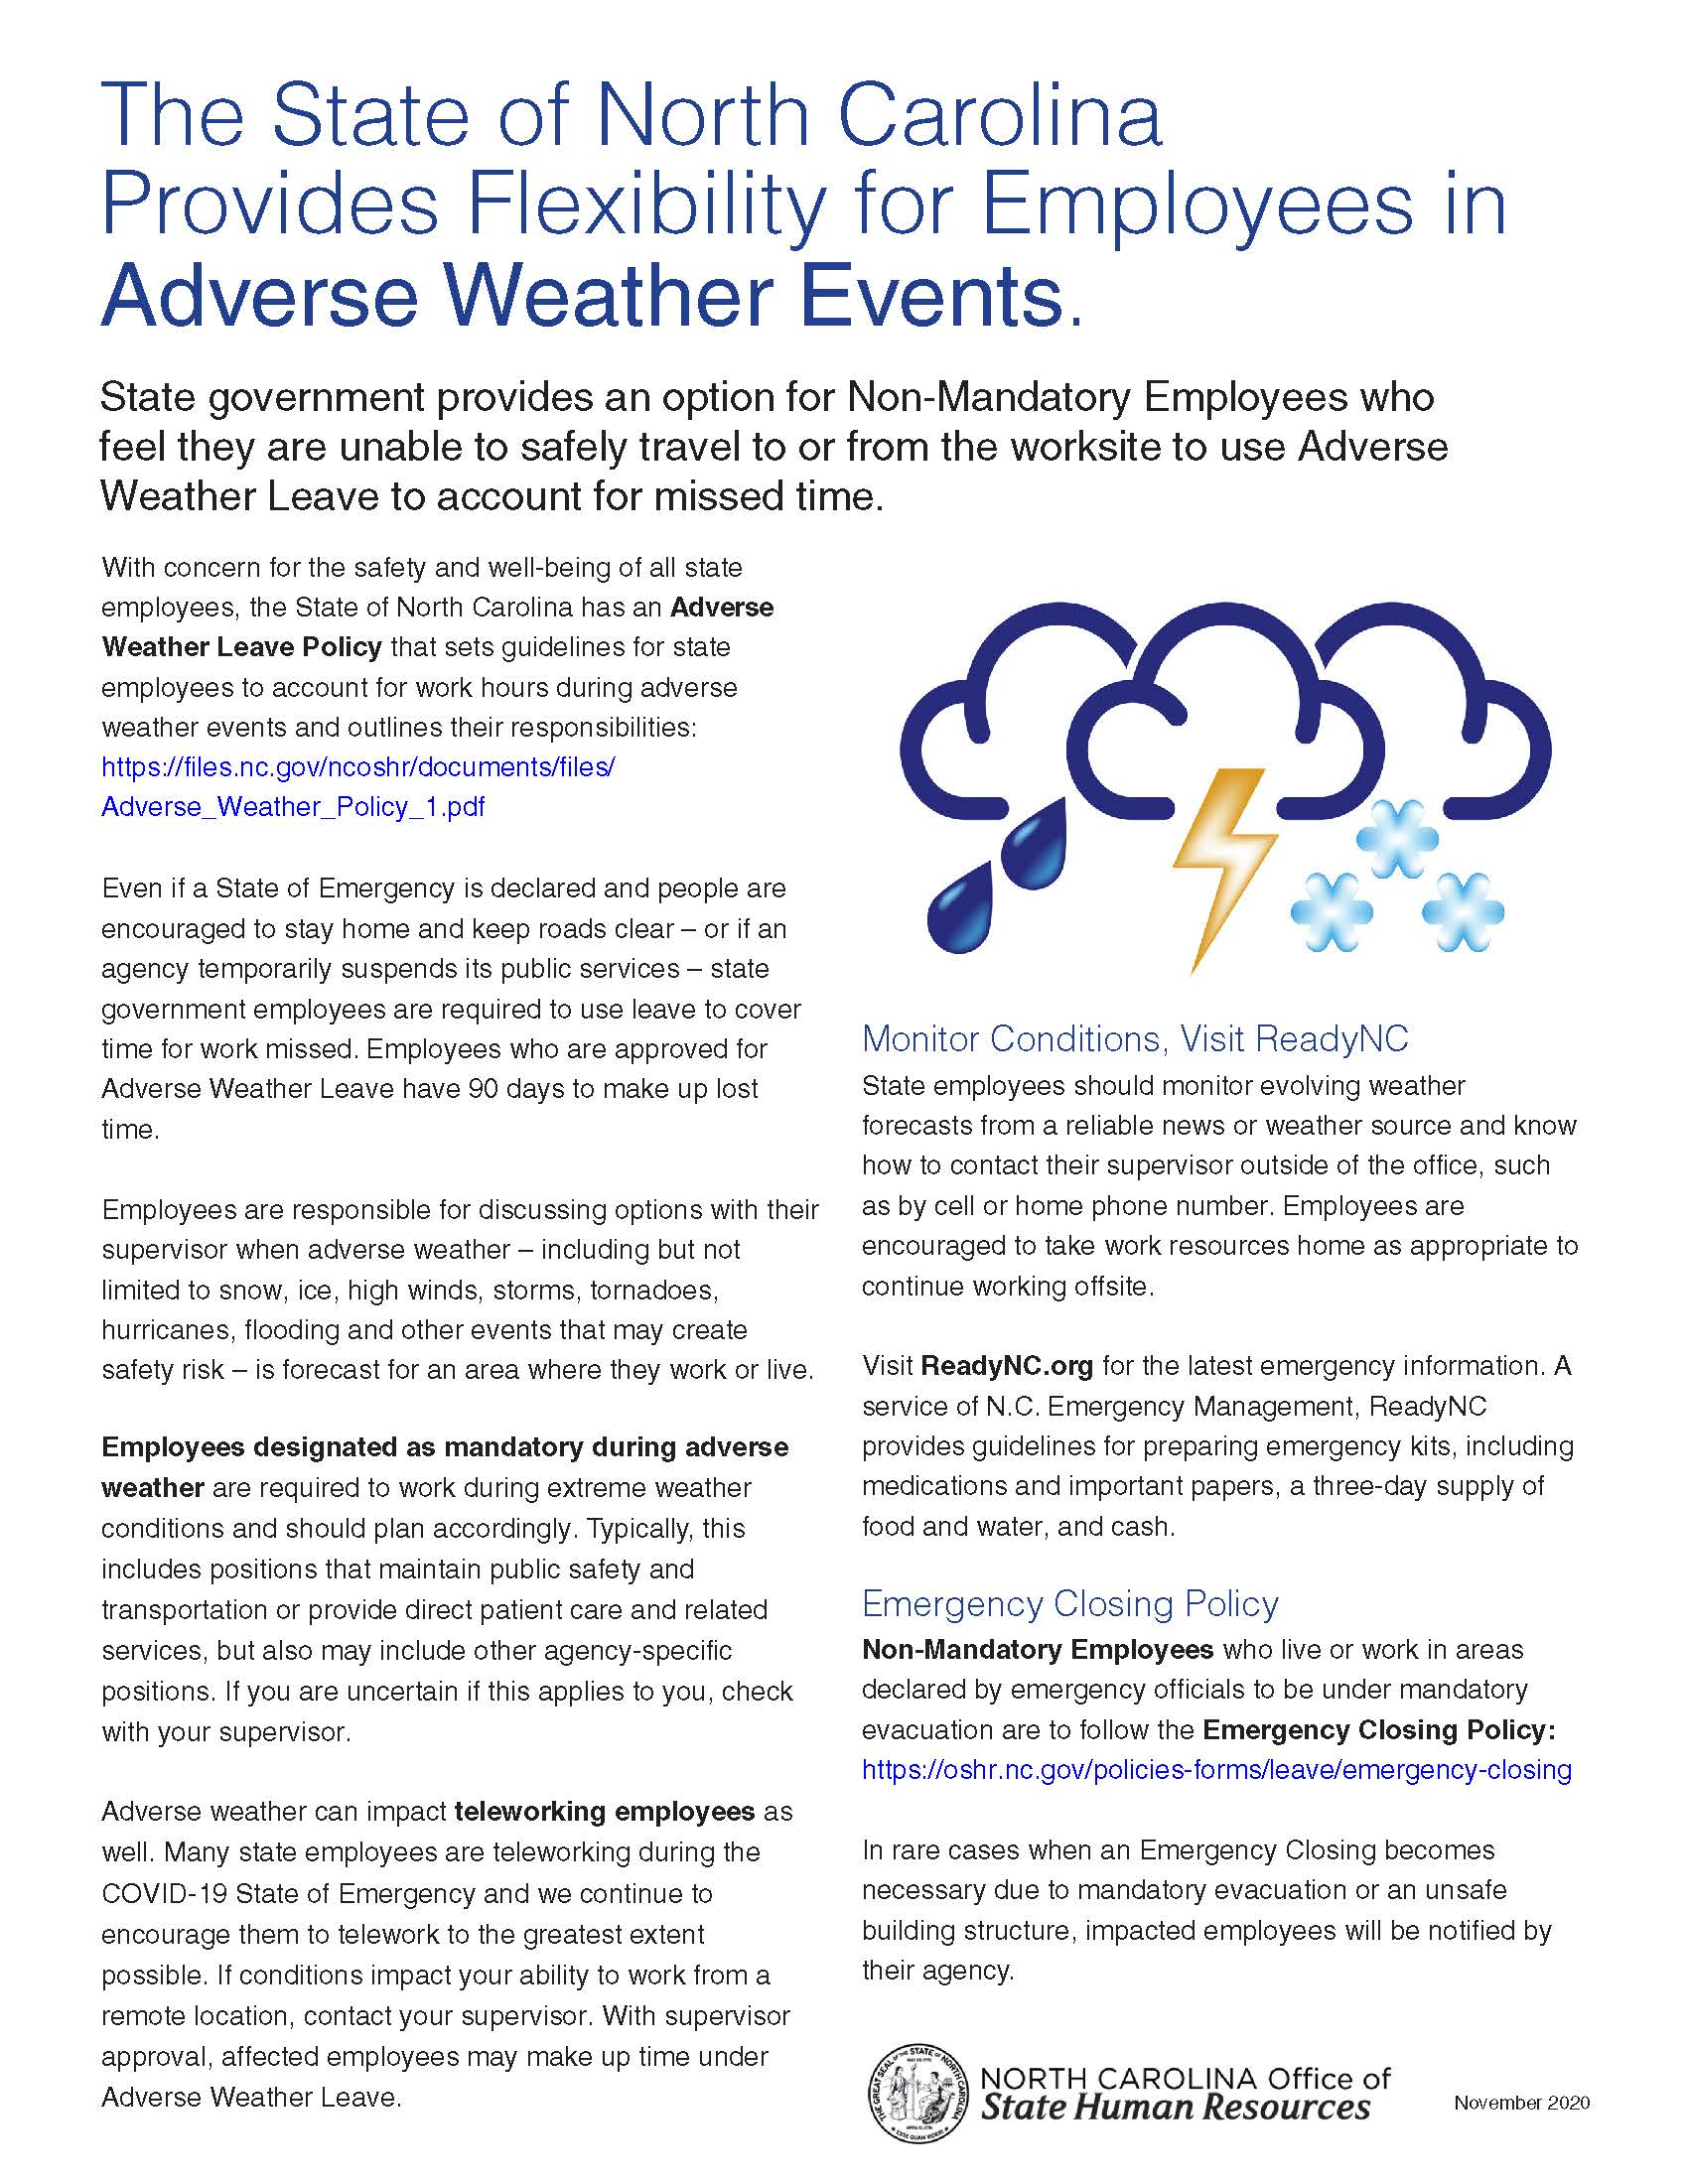 Adverse weather leave flyer for employees.